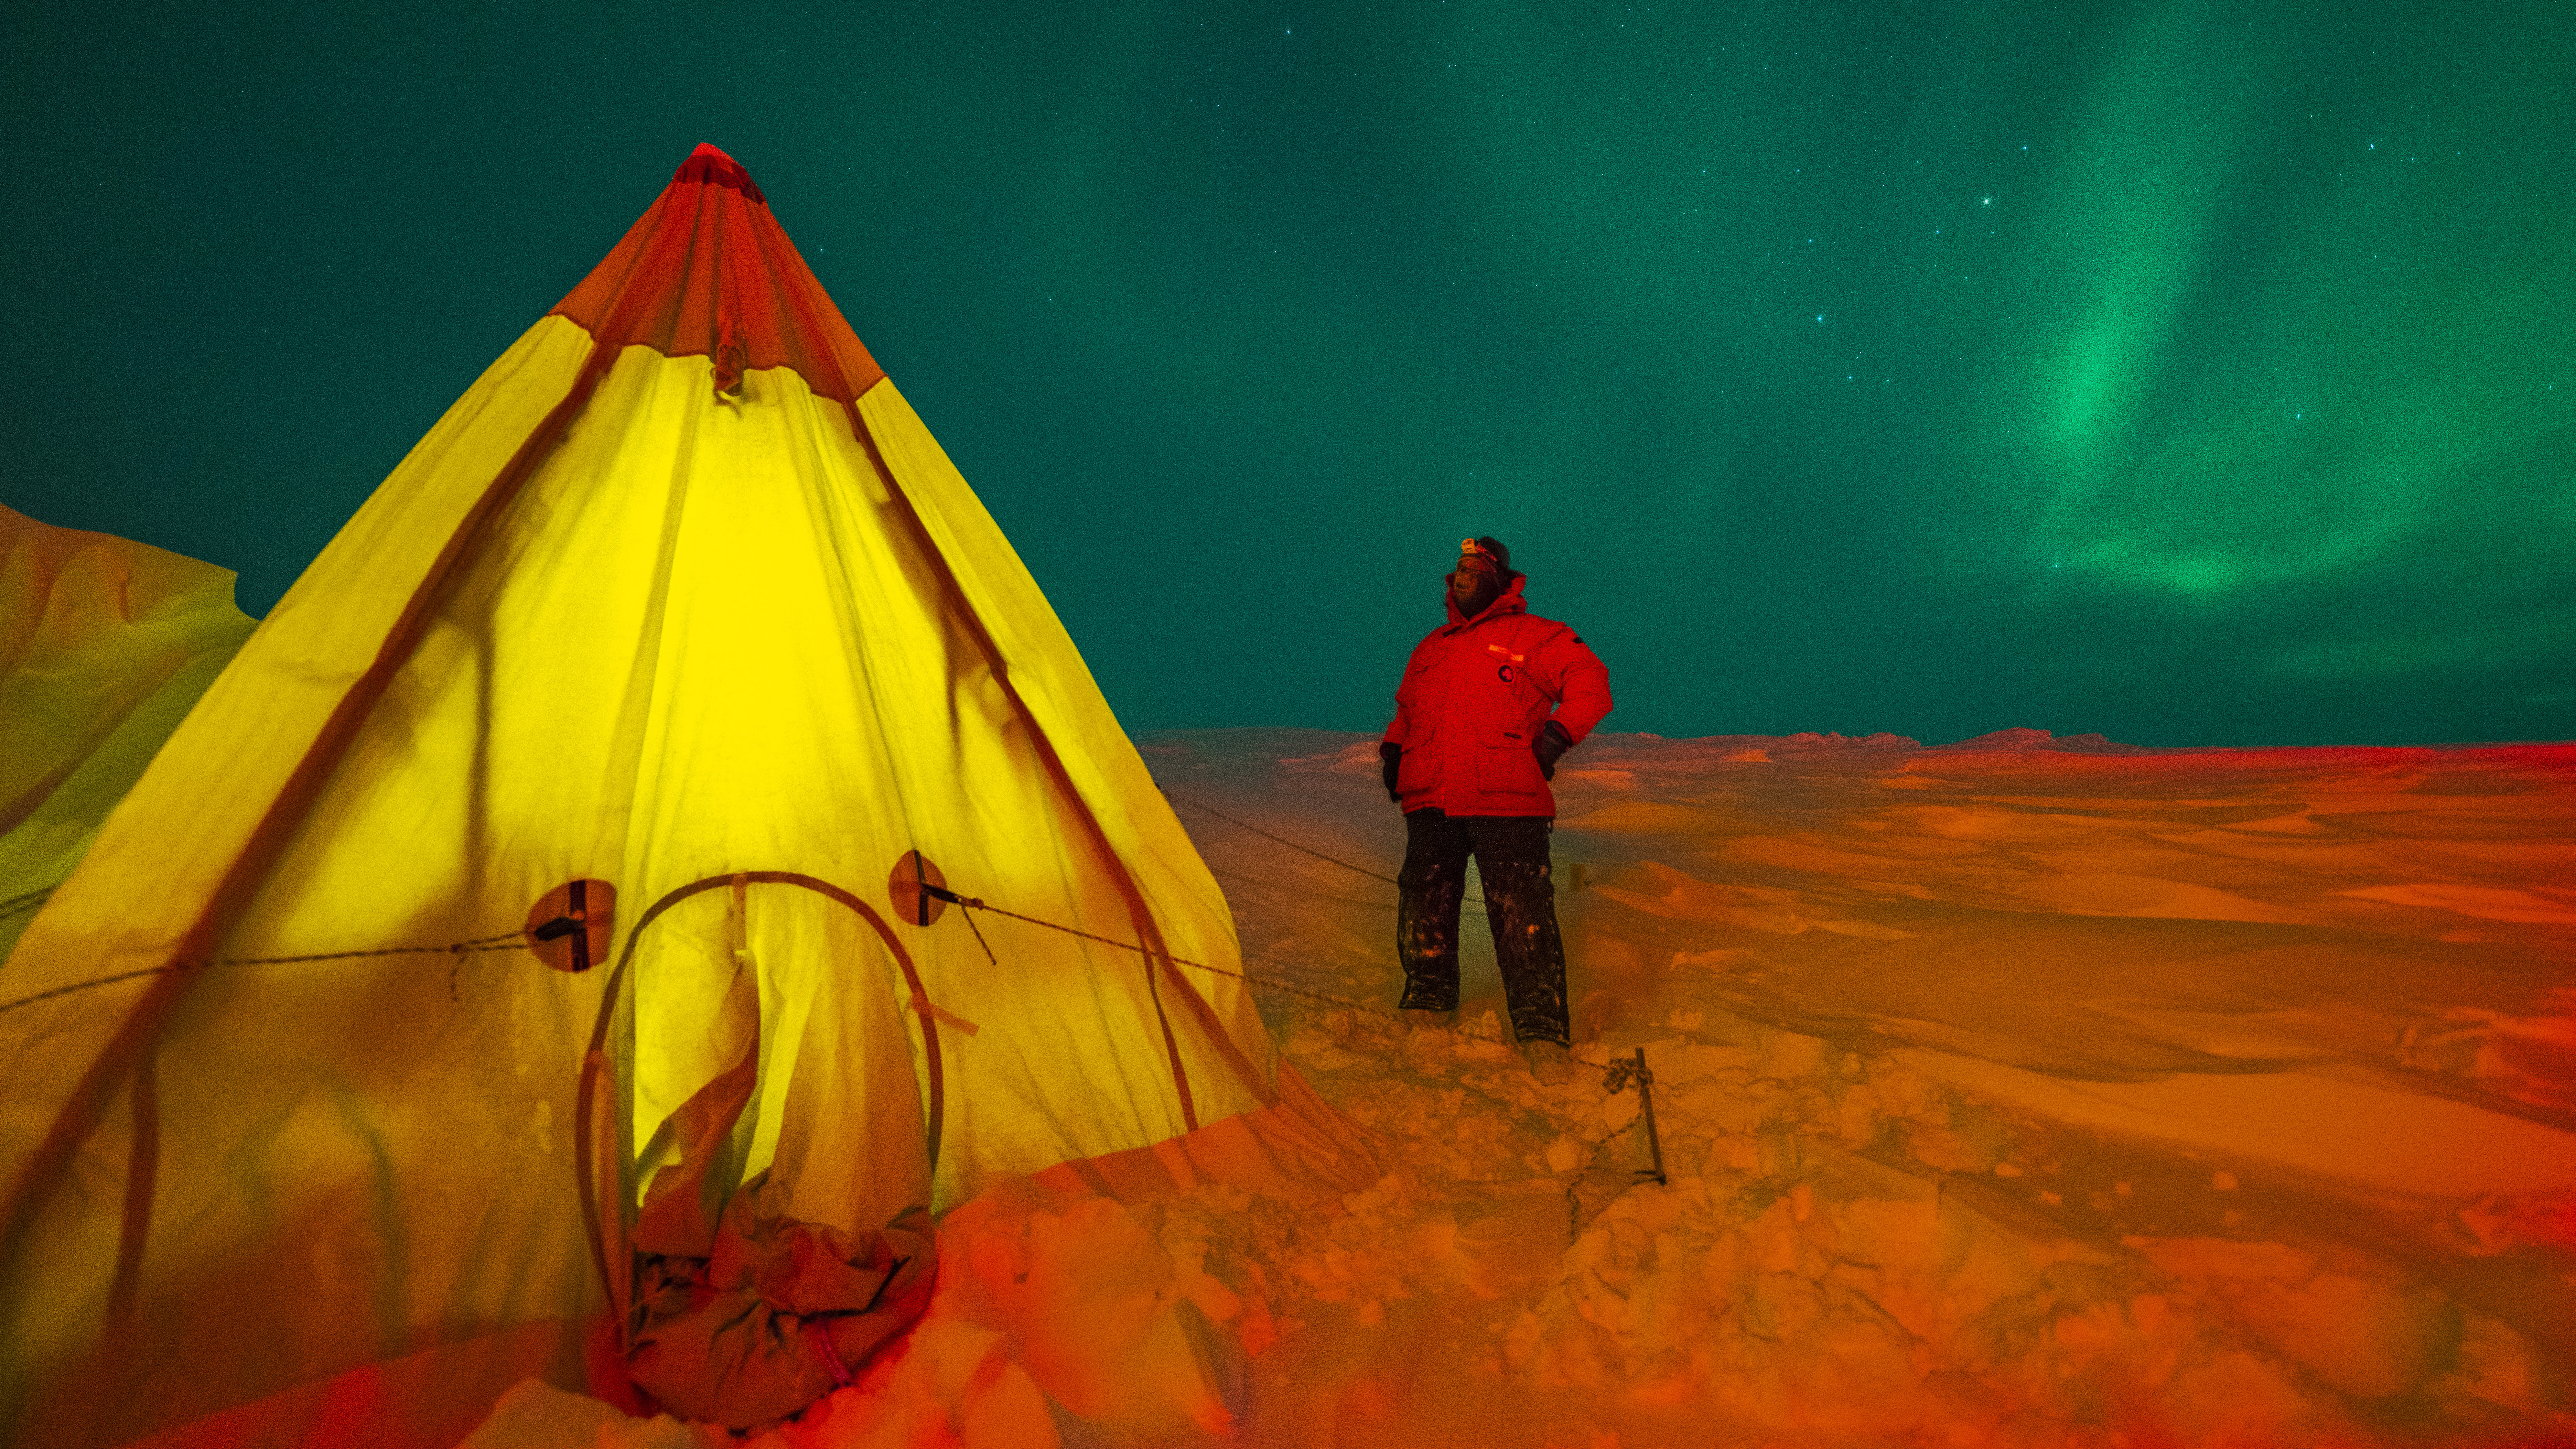 Night shot of person standing outside a pitched tent with green aurora sky.